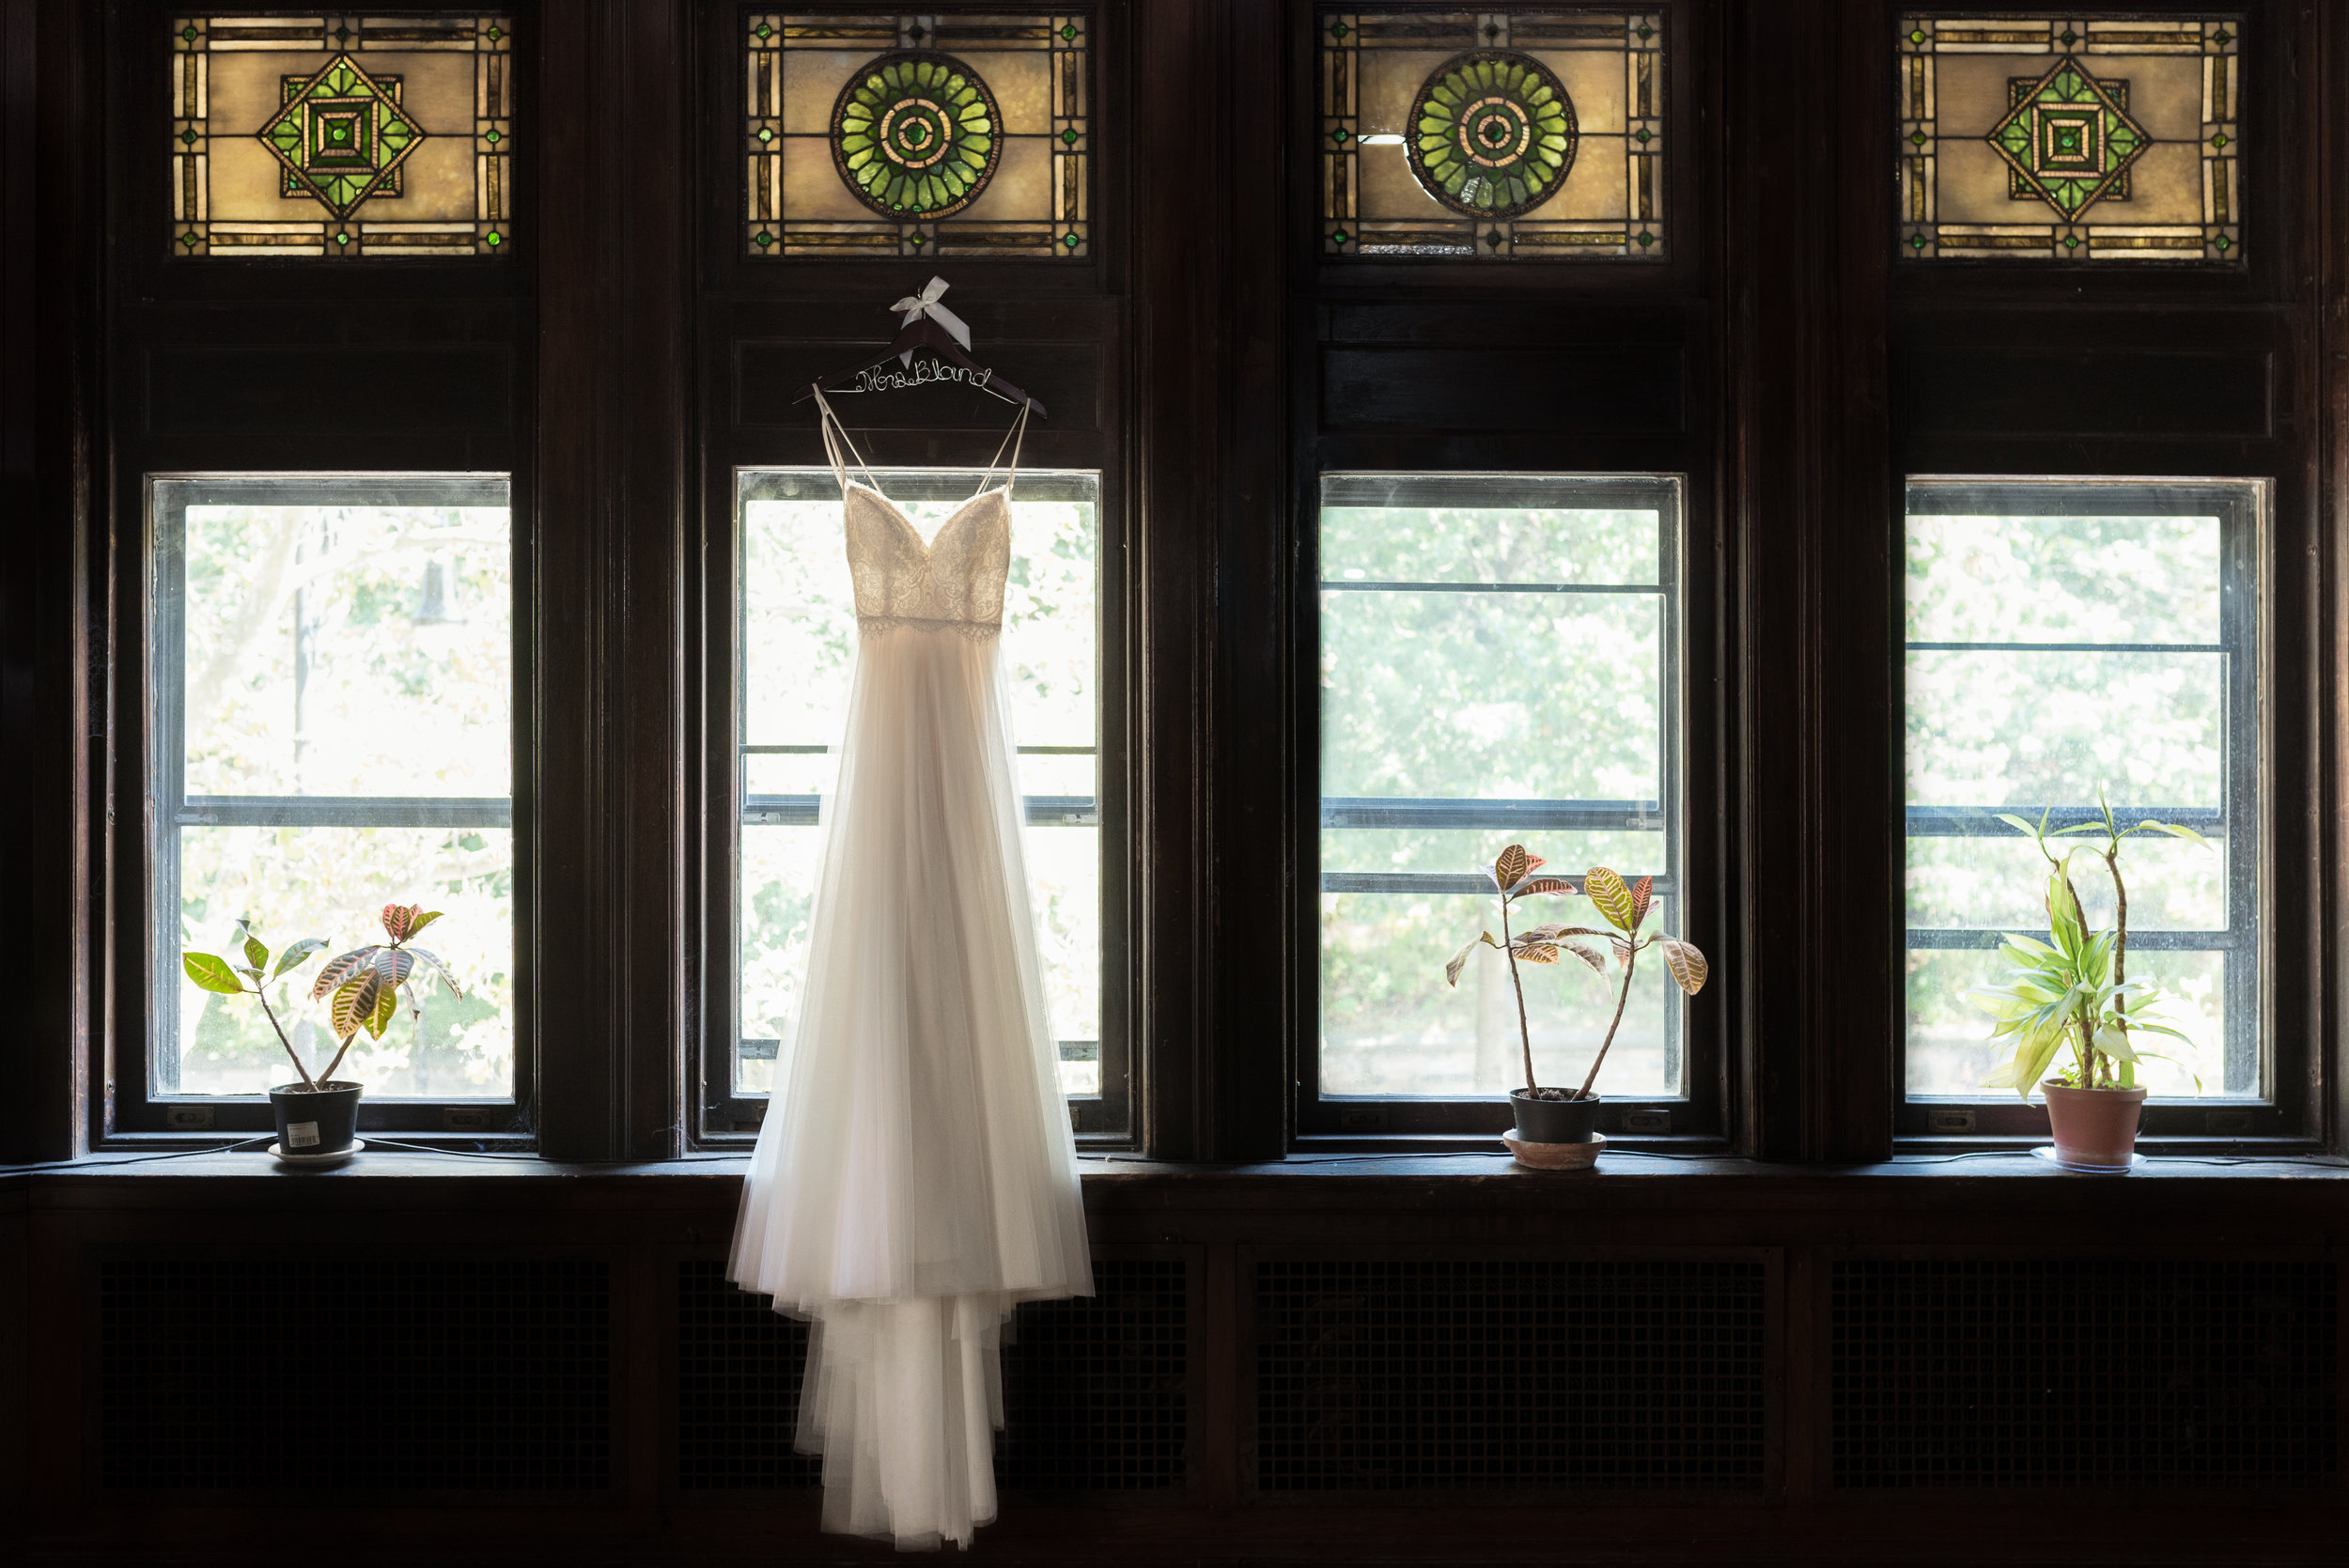 BrooklynSocietyforEthicalCultureWedding001.jpg